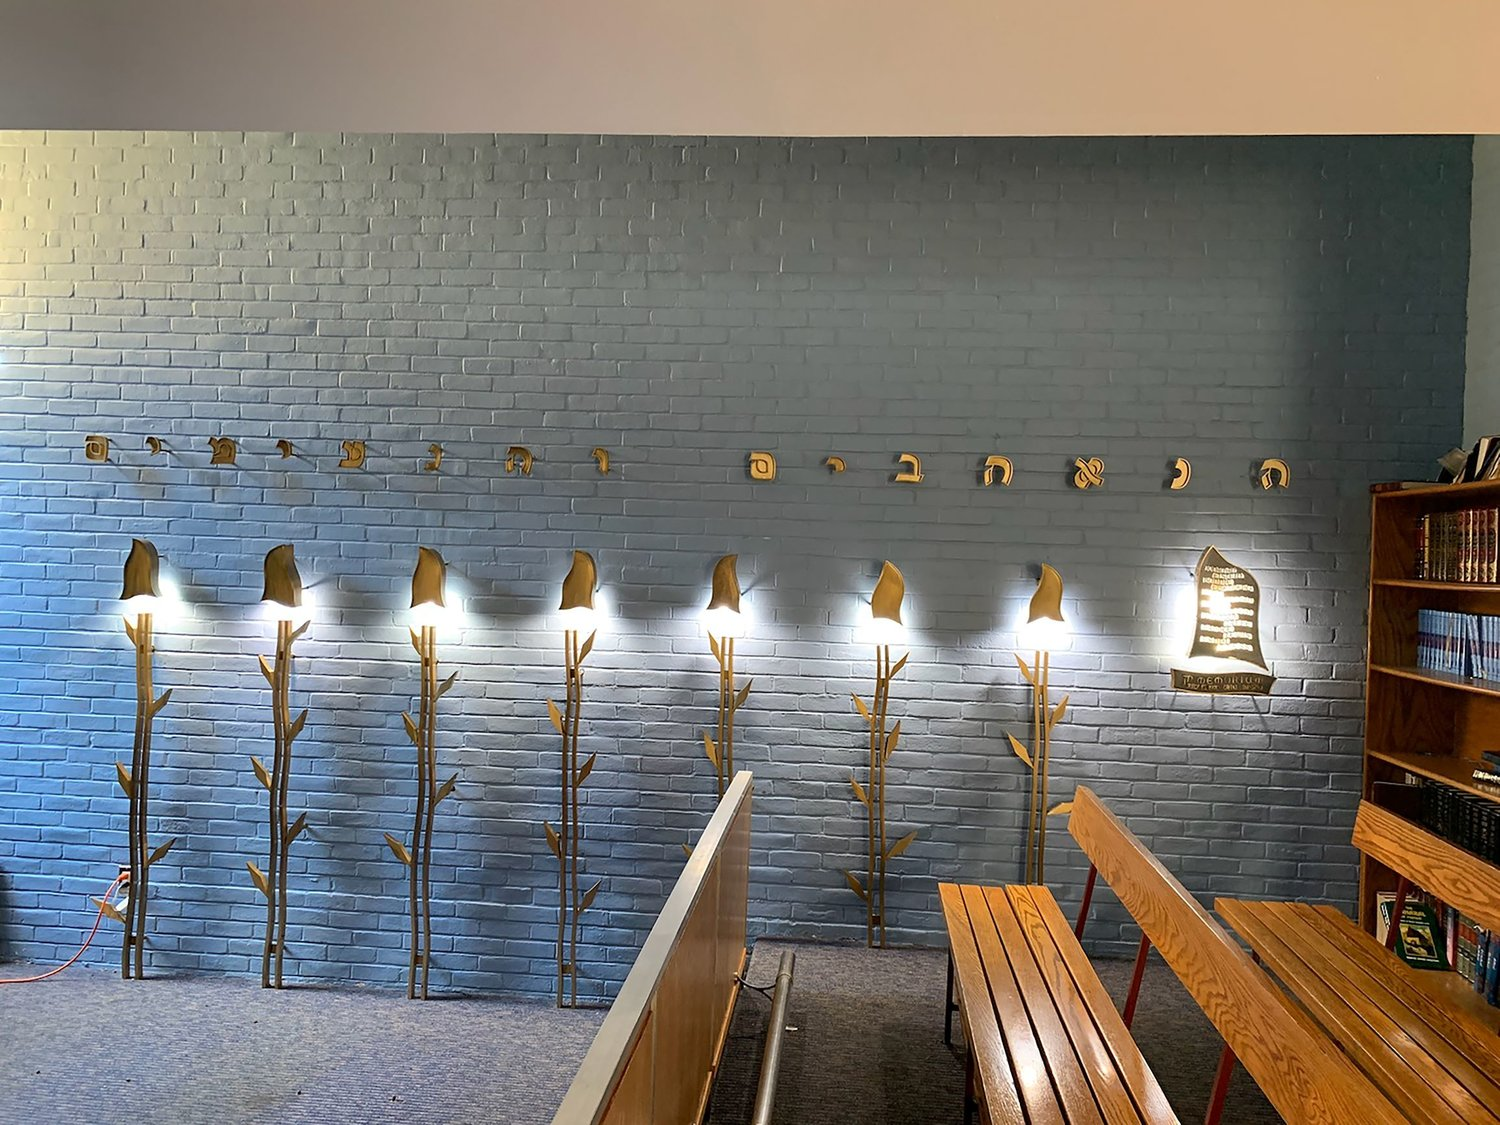 The Hillel bus accident memorial in the bais medrash (study room) at HAFTR's lower school in Lawrence. The symbolic trees represent the seven children who died.